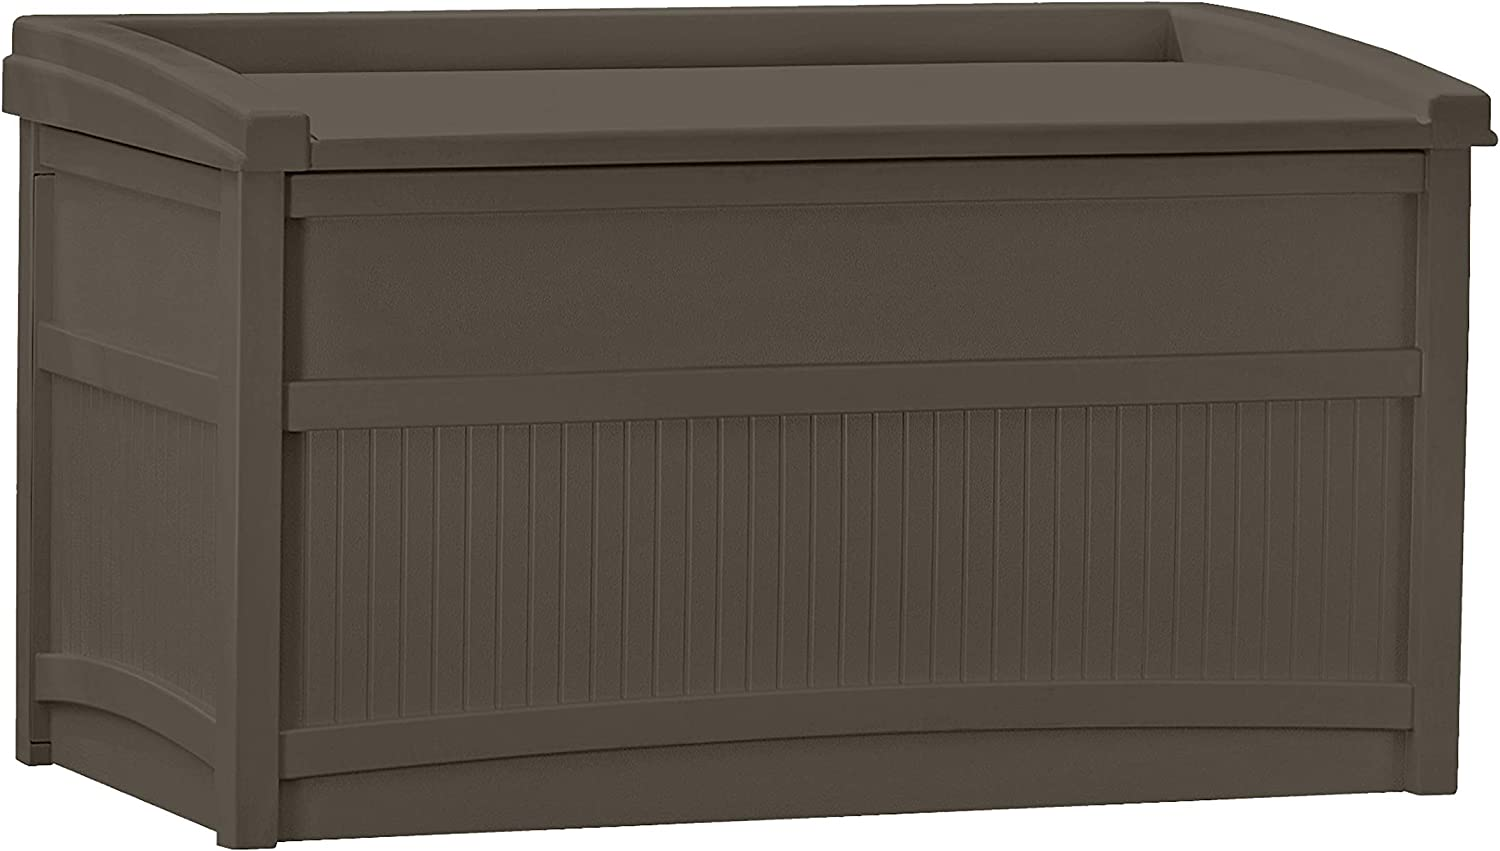 Amazon Com Suncast 50 Gallon Medium Deck Box Lightweight Resin Indoor Outdoor Storage Container And Seat For Patio Cushions And Gardening Tools Store Items On Patio Garage Yard Java Garden Outdoor